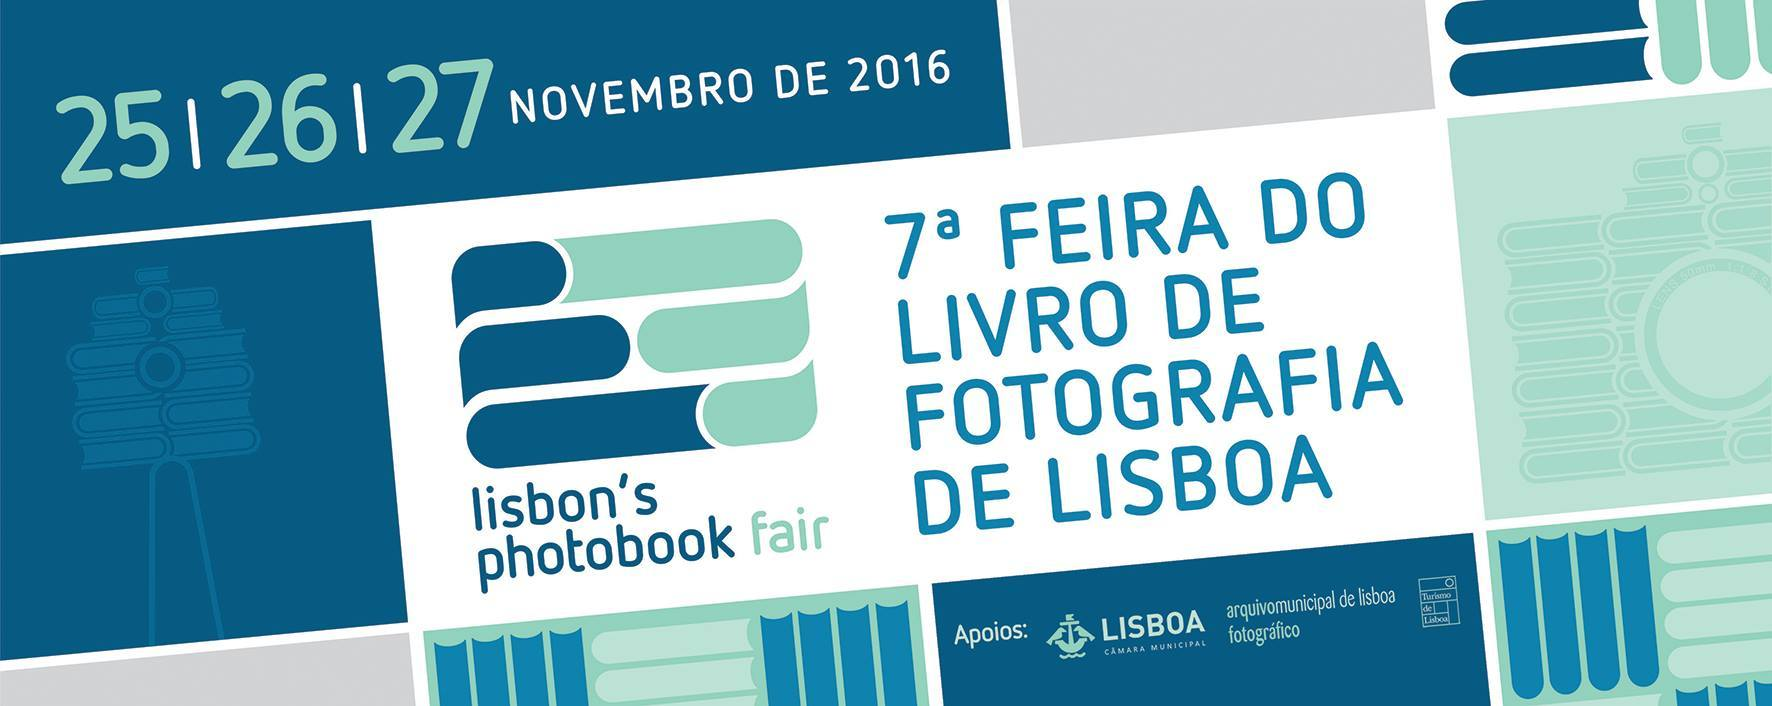 Promotional Banner for the 7th Lisbon Photobook Fair 2016